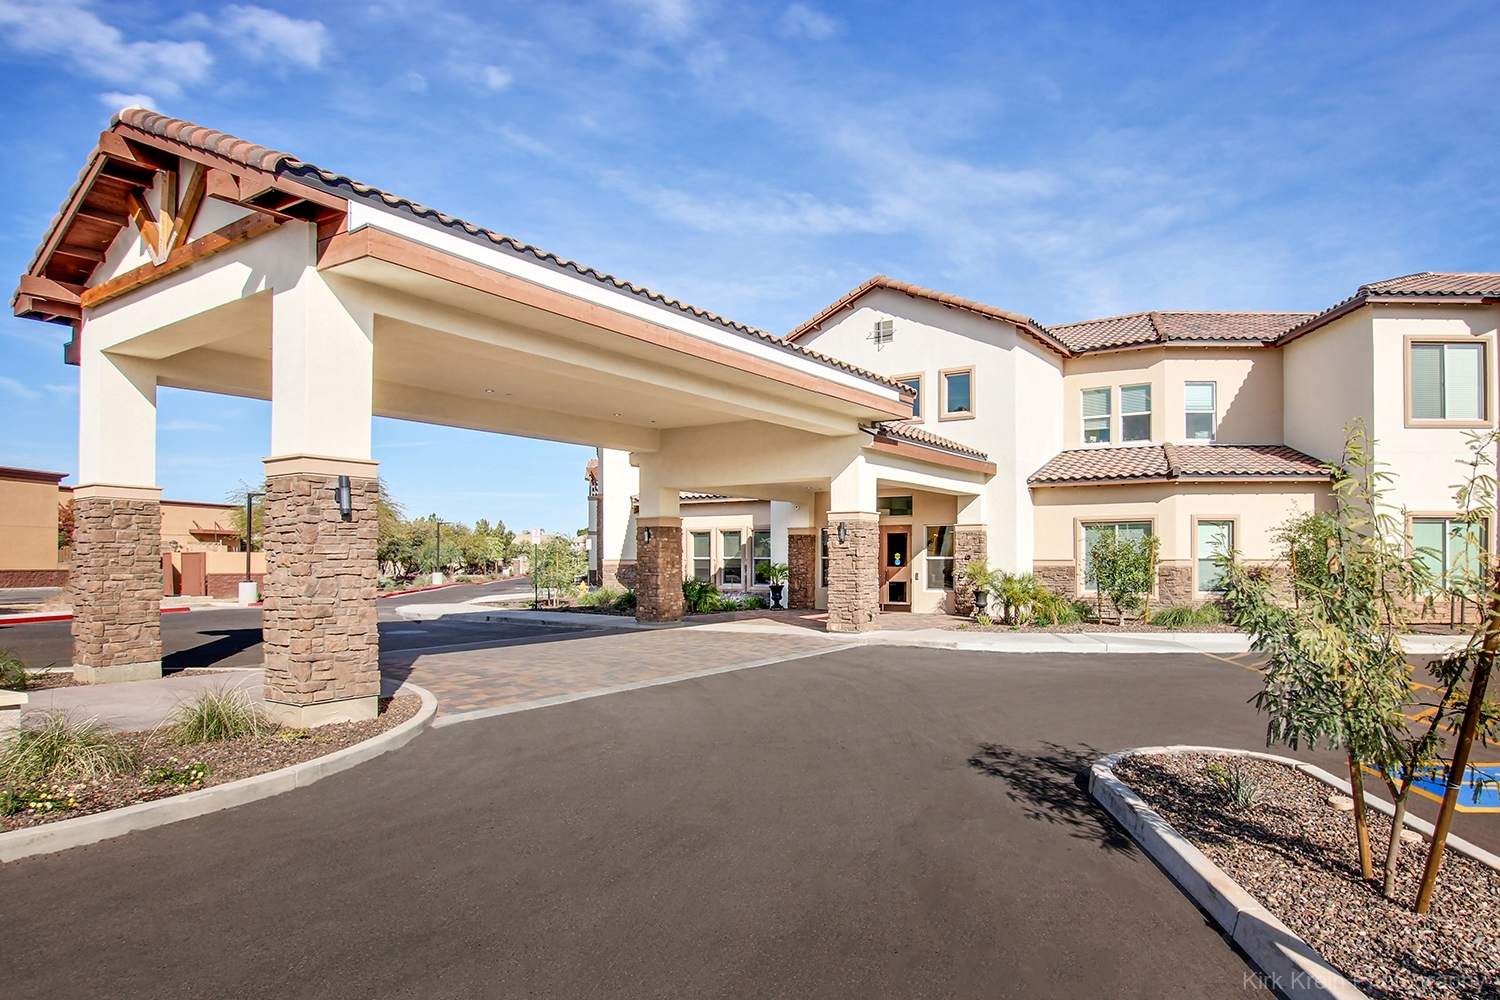 Assisted Living Facility, Architectural and Commercial Real Estate Photography by Kirk Krein, Phoenix, AZ - East Valley and Beyond! Mesa, Gilbert, Chandler, Tempe and Scottsdale AZ.